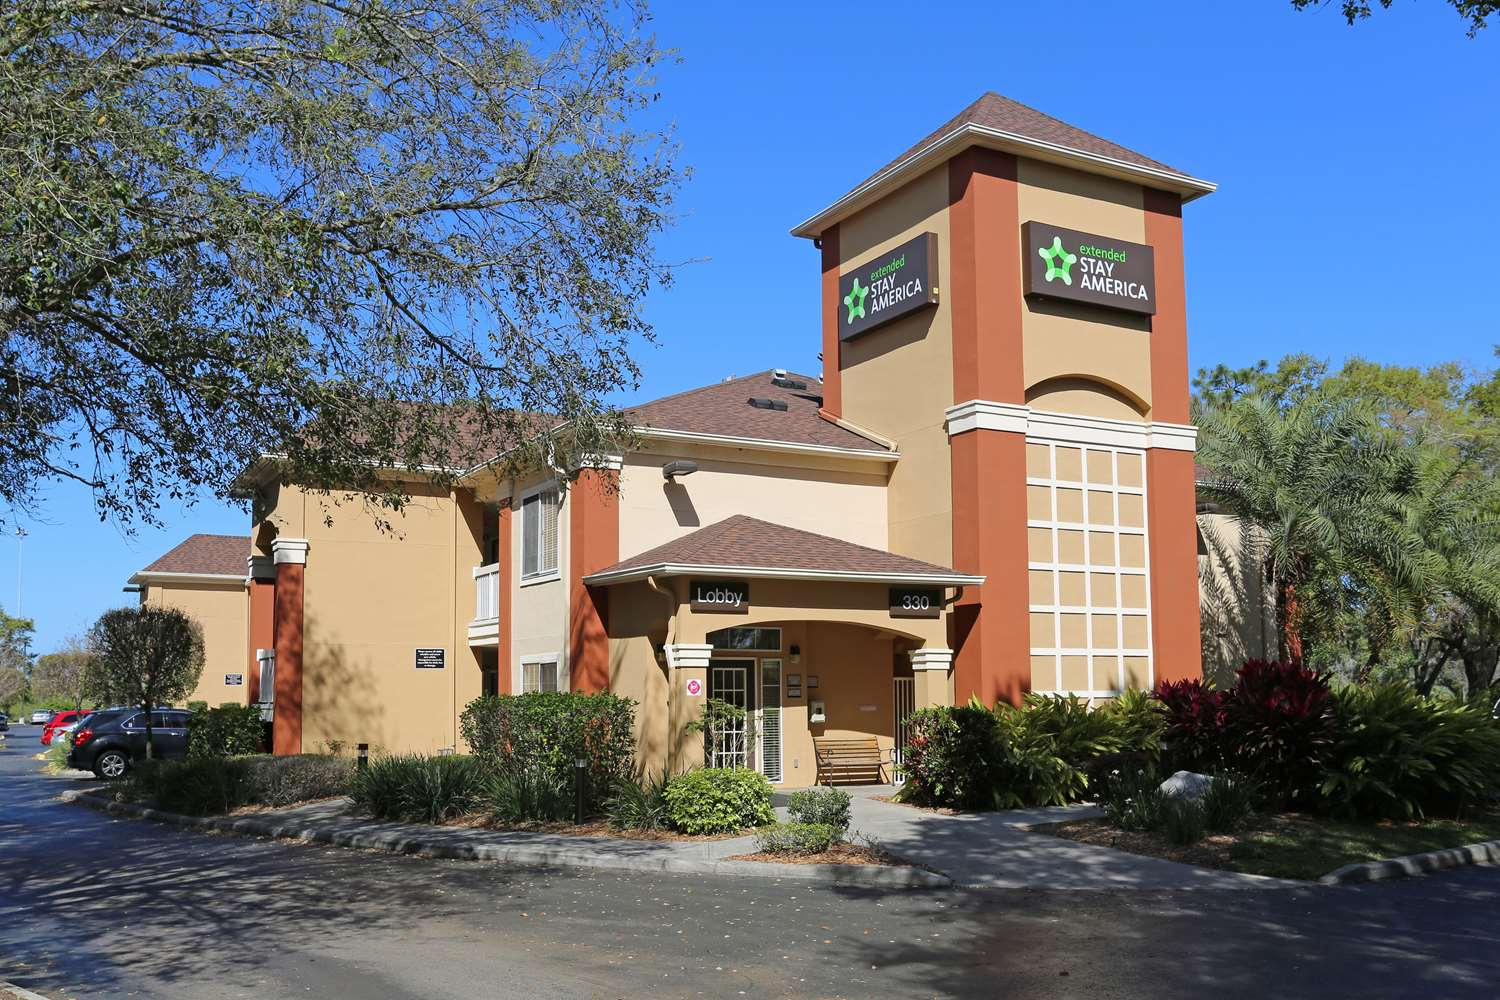 Hotels And Motels In Brandon Florida